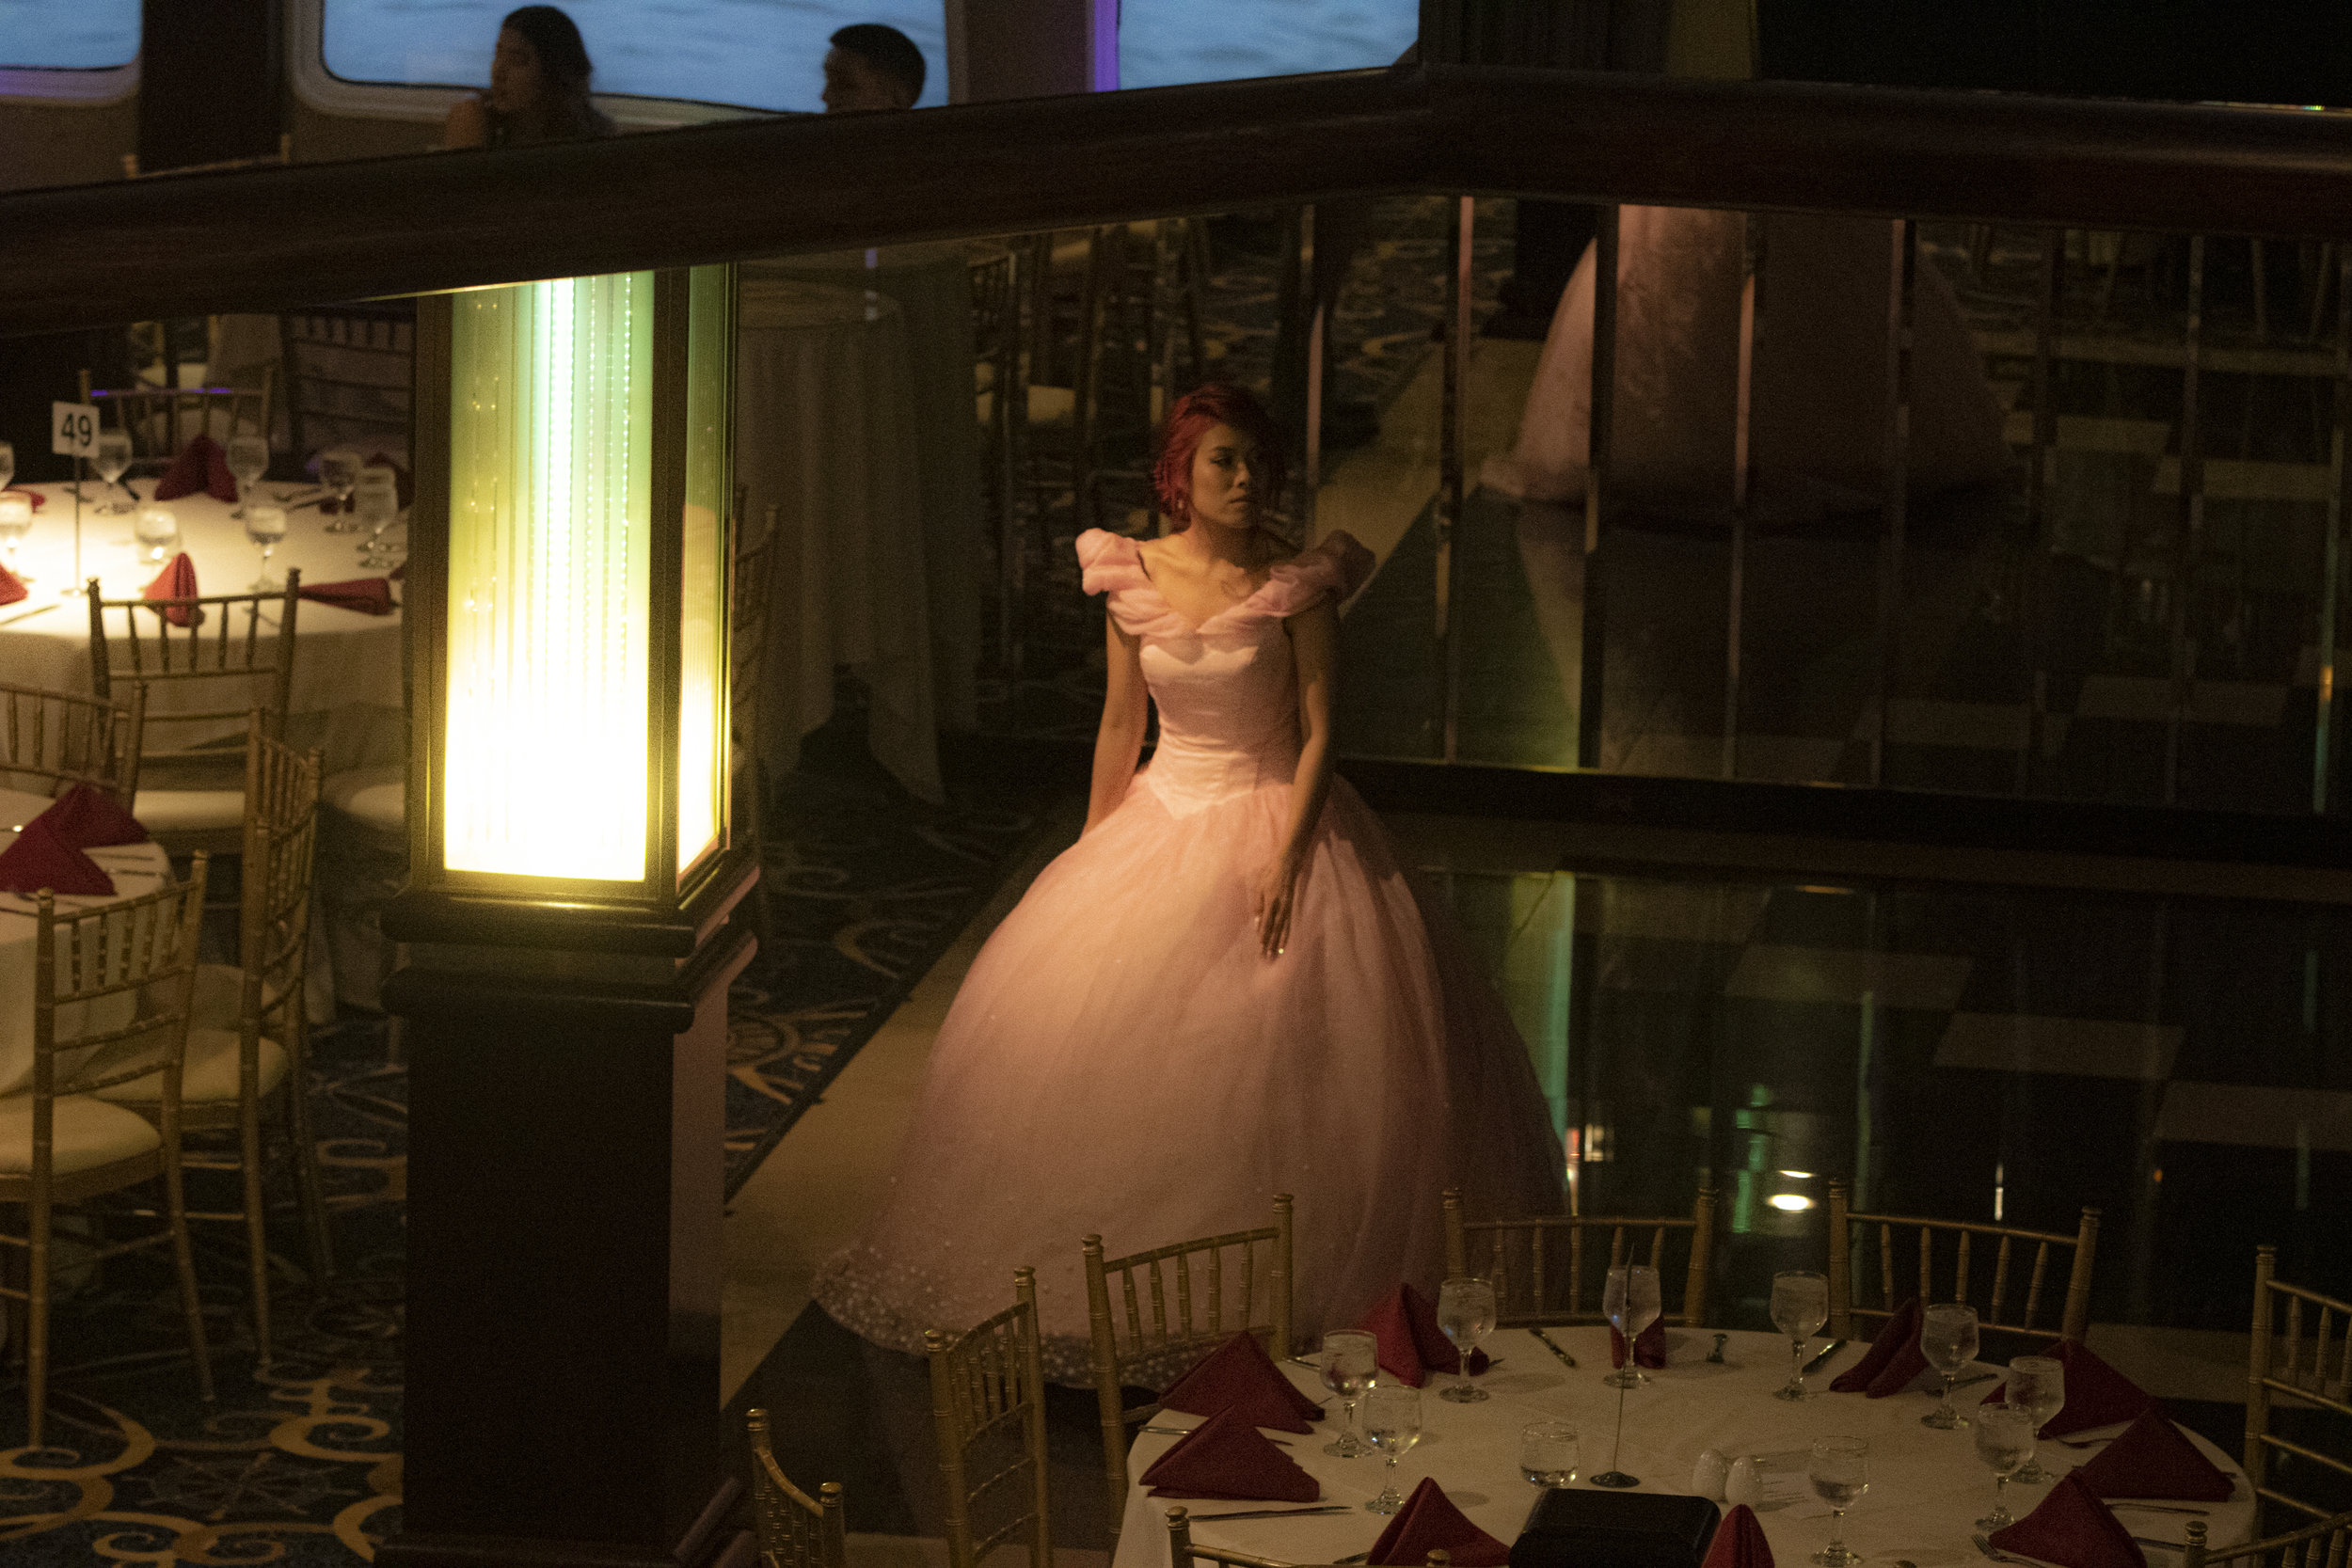 Taren Quang takes a moment alone at Curtis Prom in Hoboken, N.J. on Saturday, June 15, 2019.